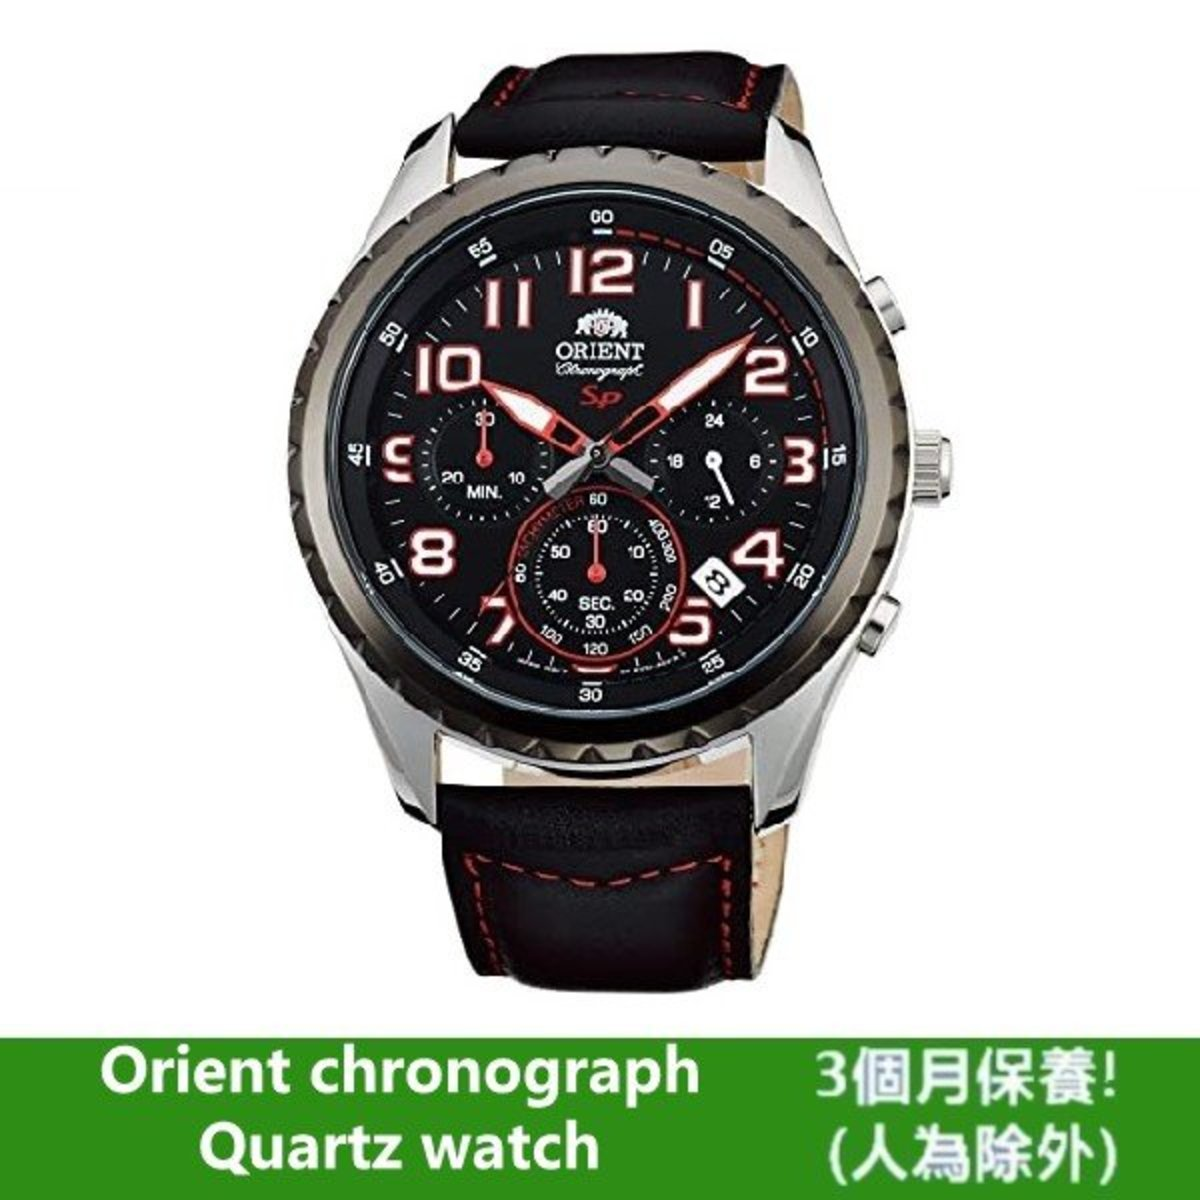 Orient chronograph quartz watch SKV01003B0 Parallel import